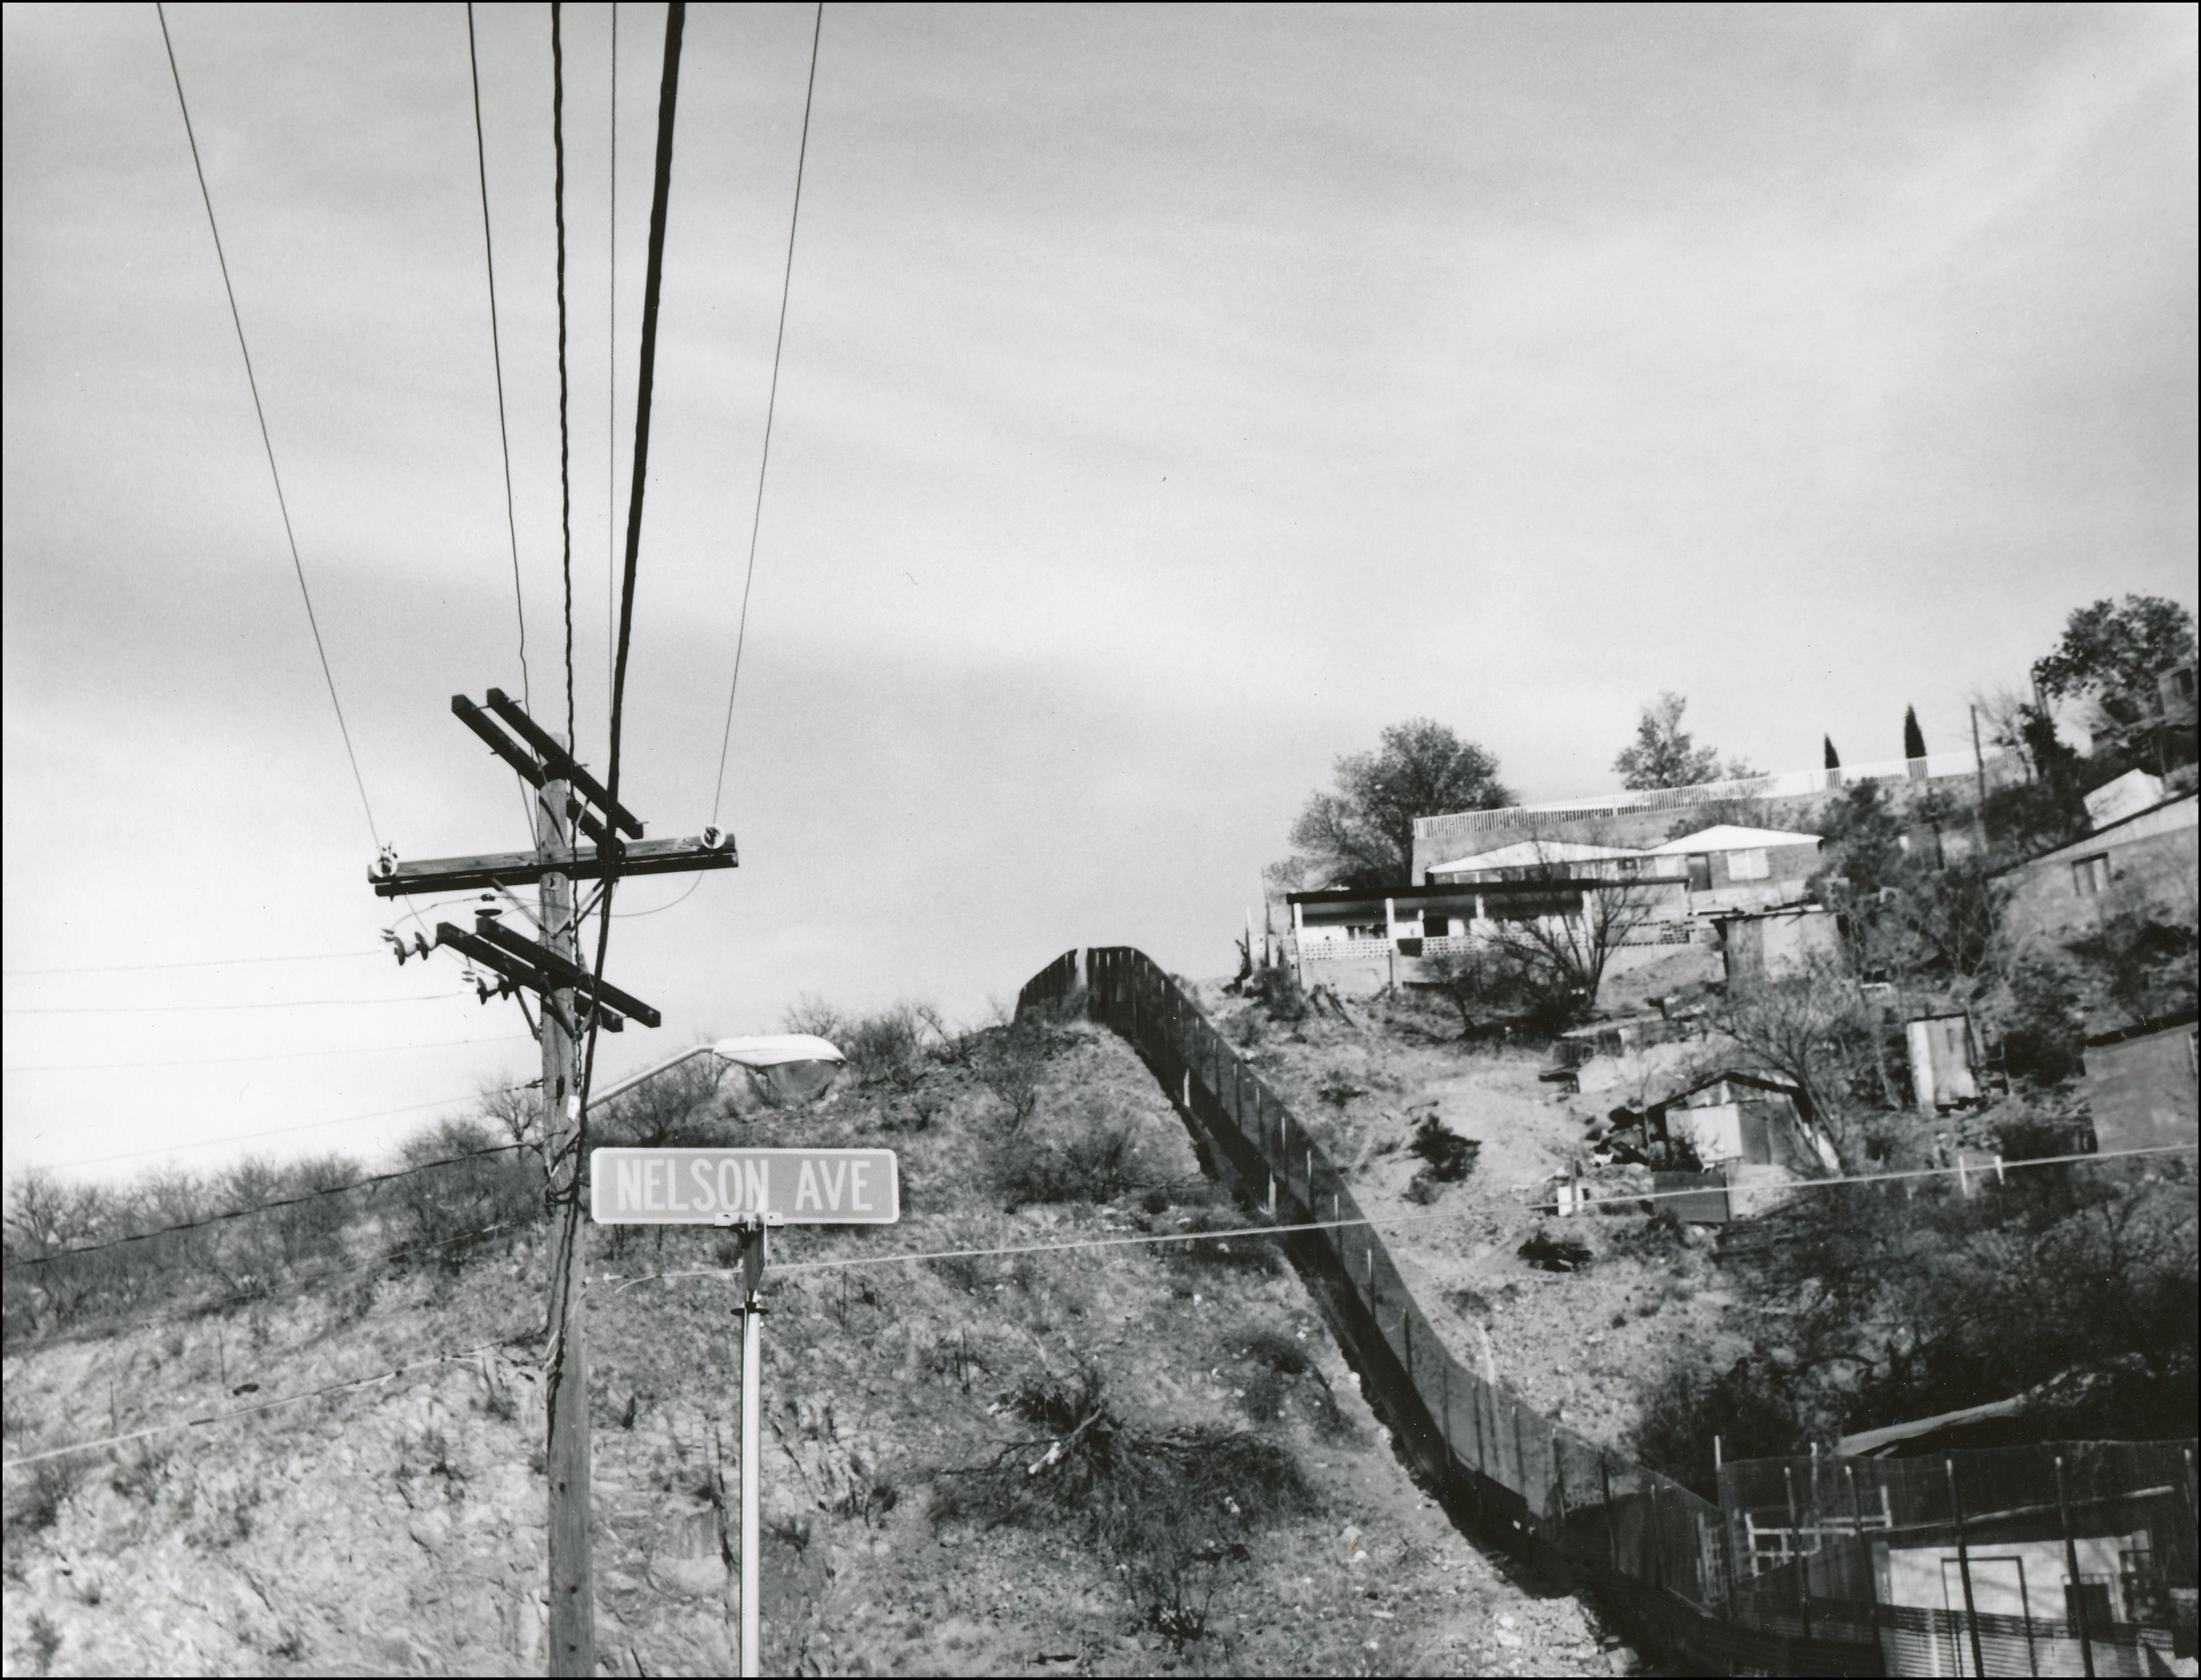 View of a border fence along a hills. Houses on right side and vegetation on left side. Also view of power lines and street sign that says Nelson Ave